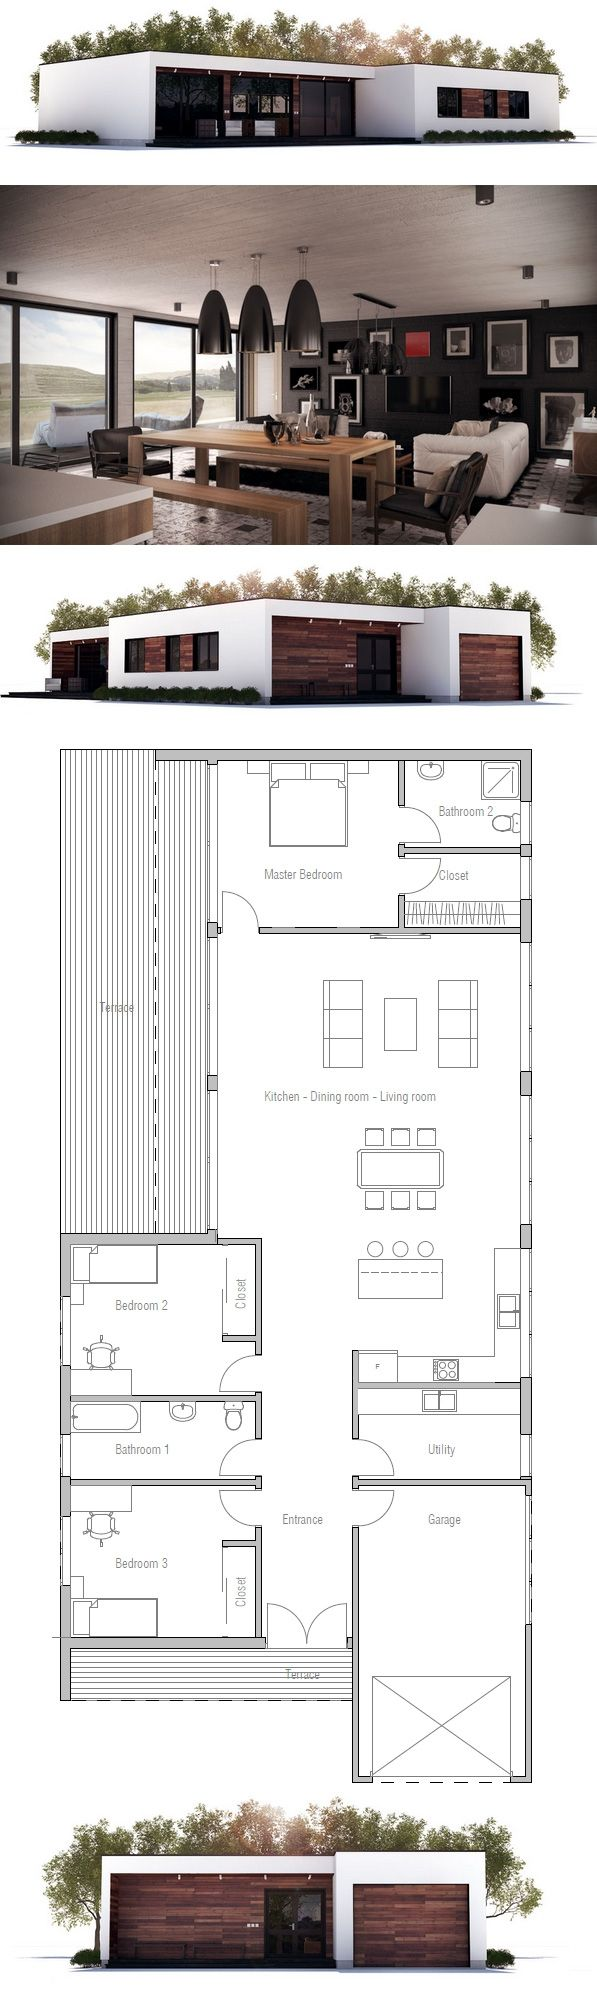 Interesting Layout Surprise Bedroom At The Back Utility Room In